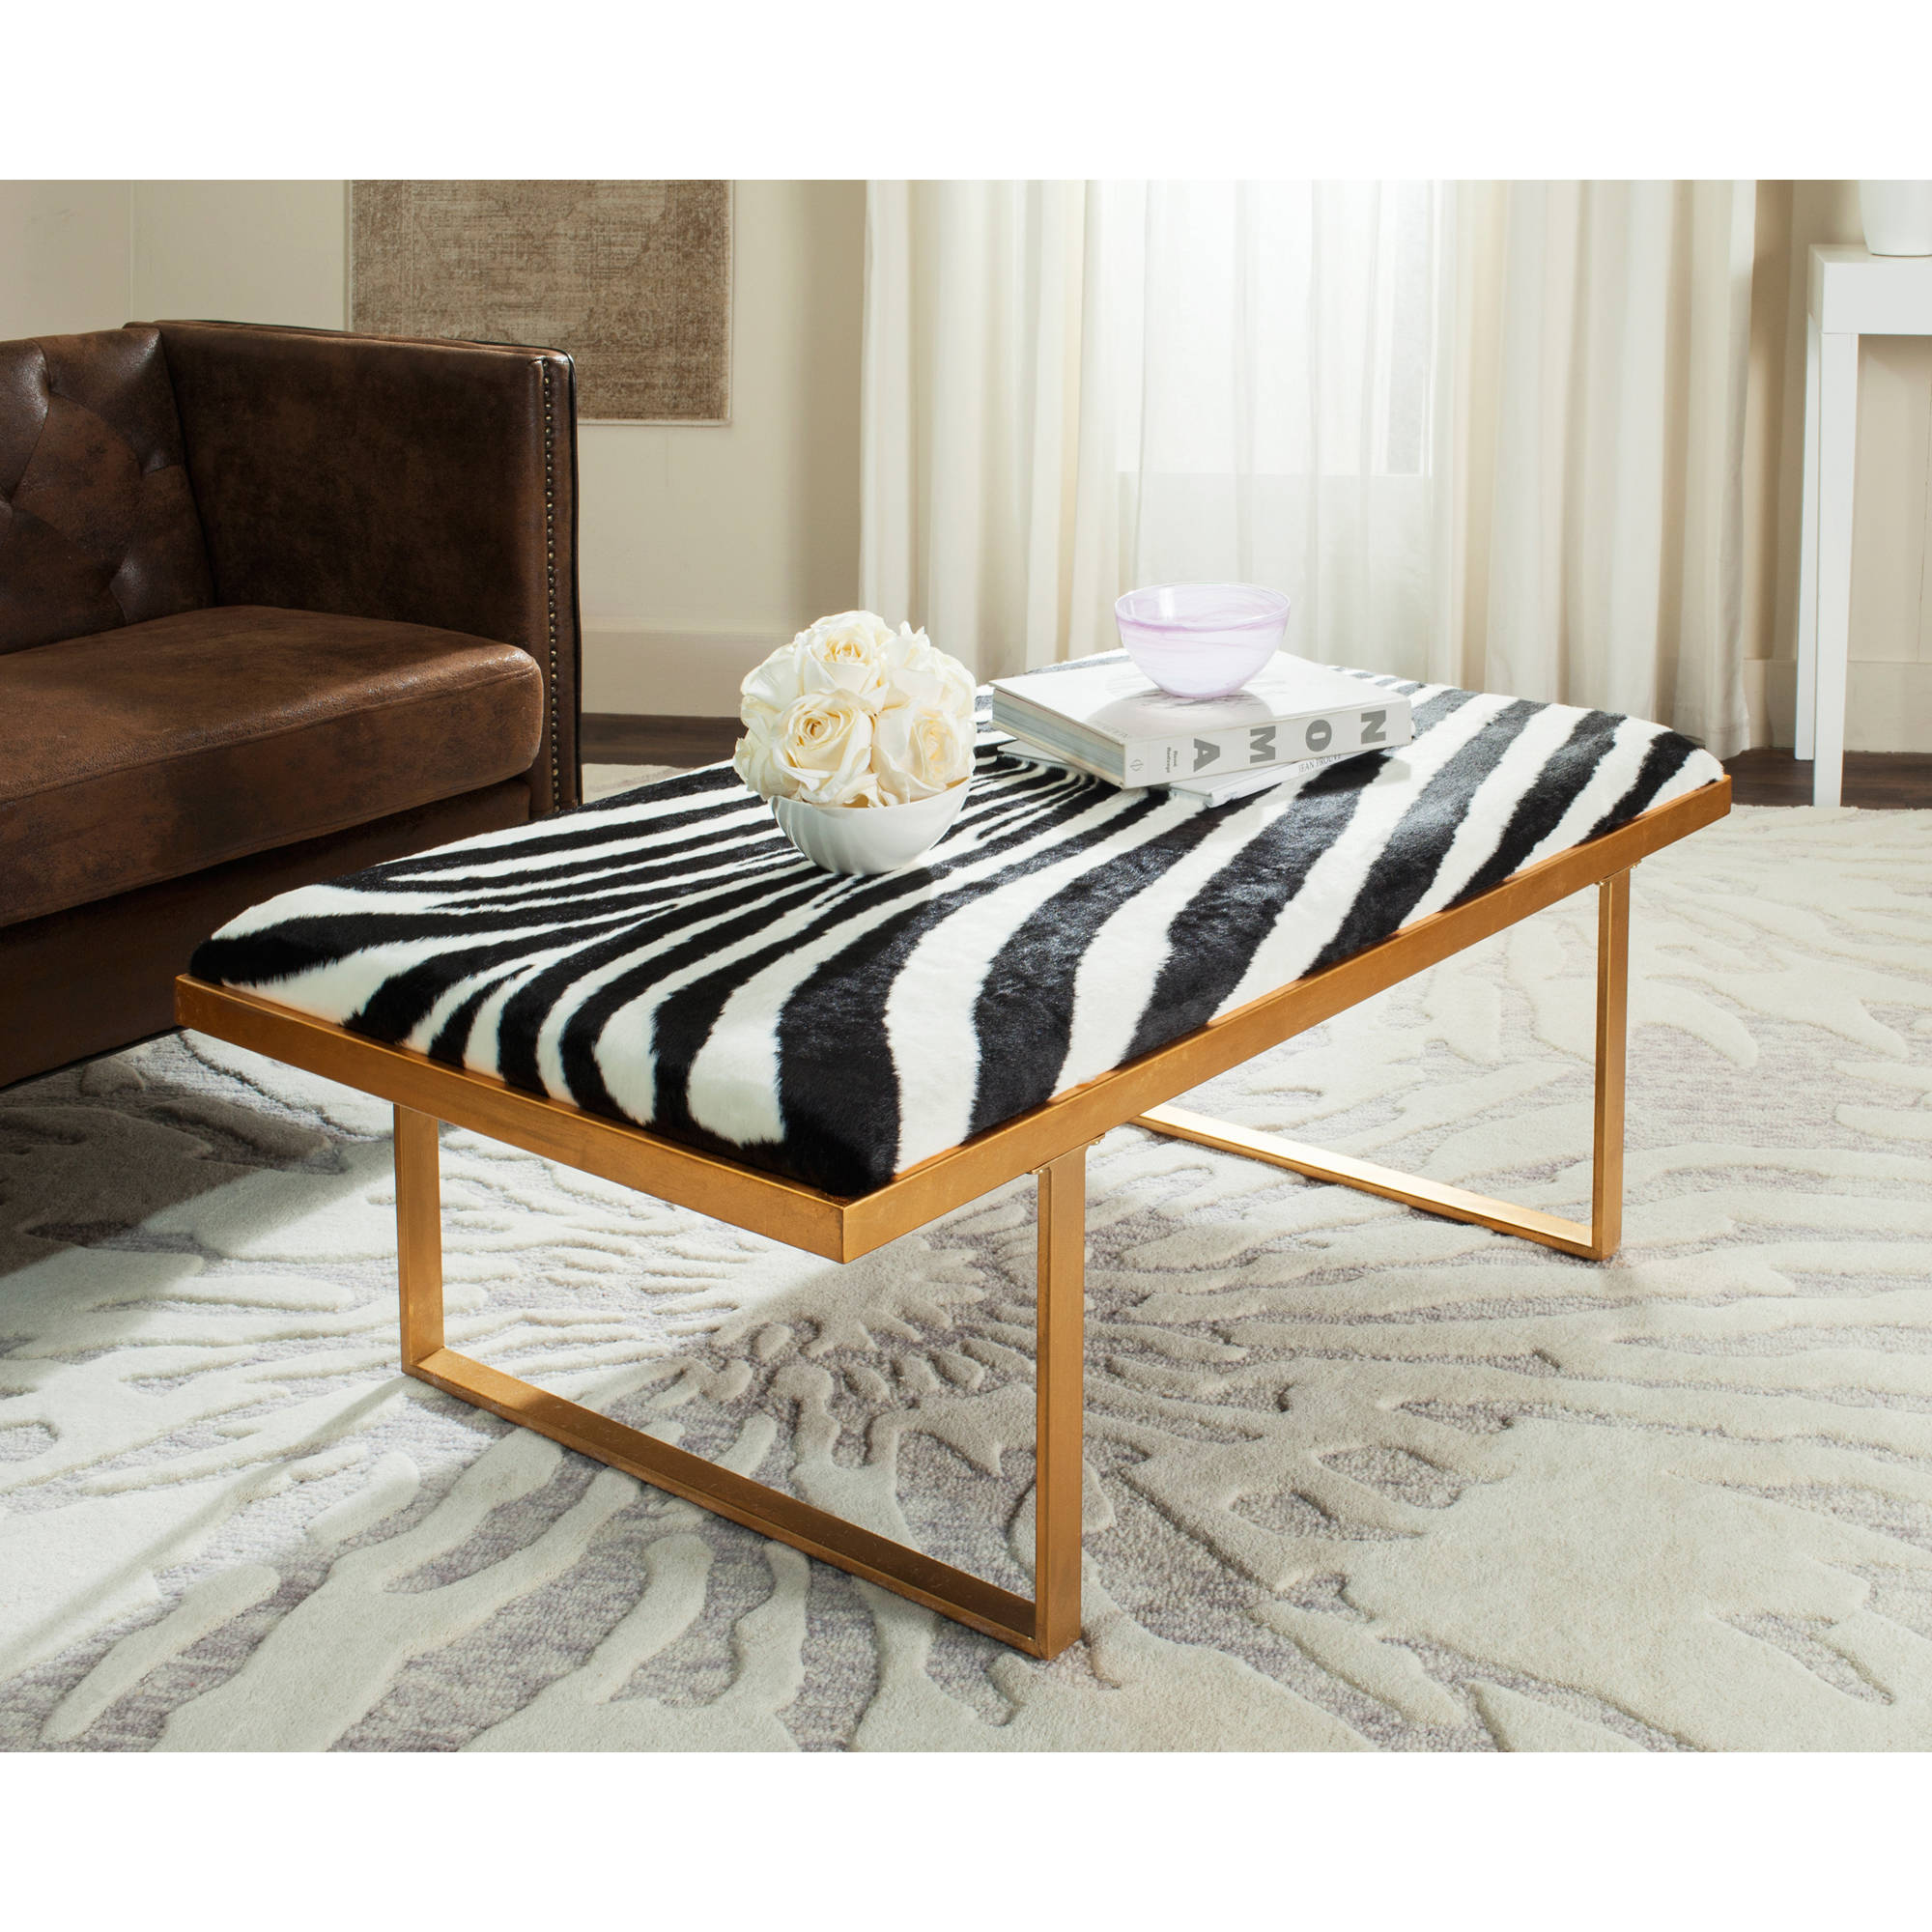 Safavieh Millie Loft BenchCoffee Table Walmartcom